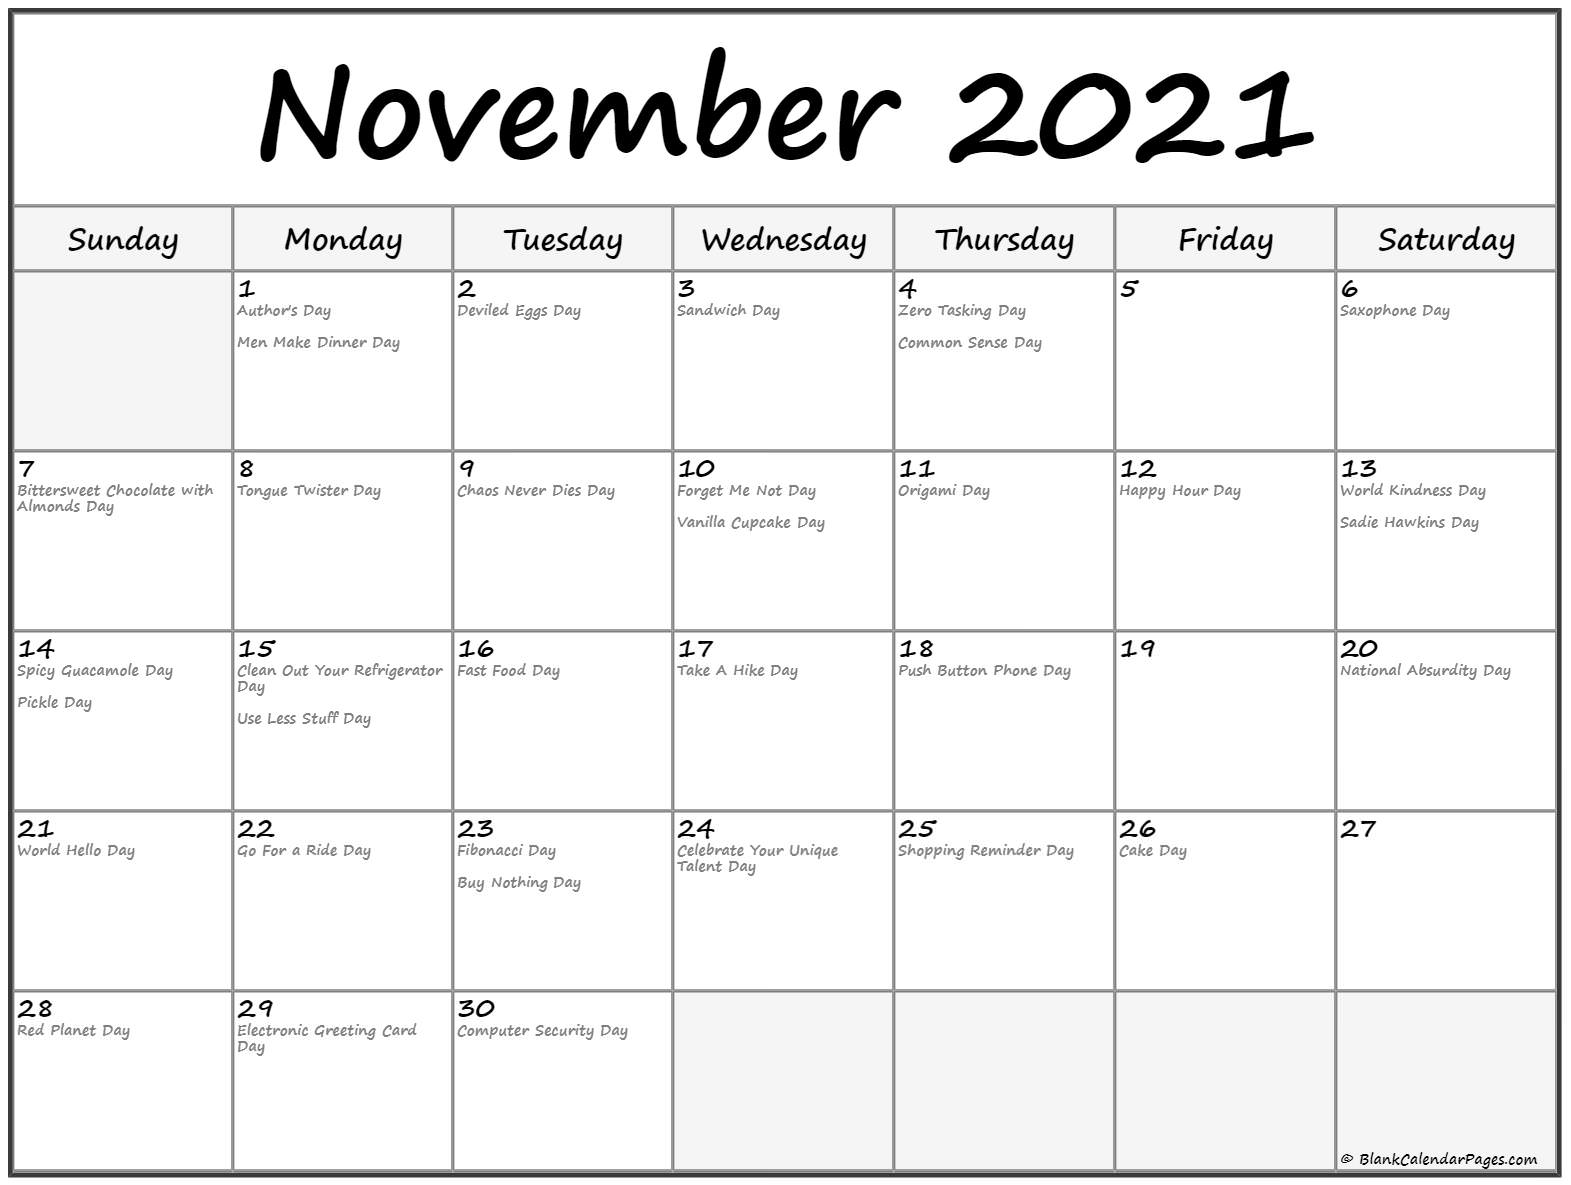 November 2018 funny holidays calendar